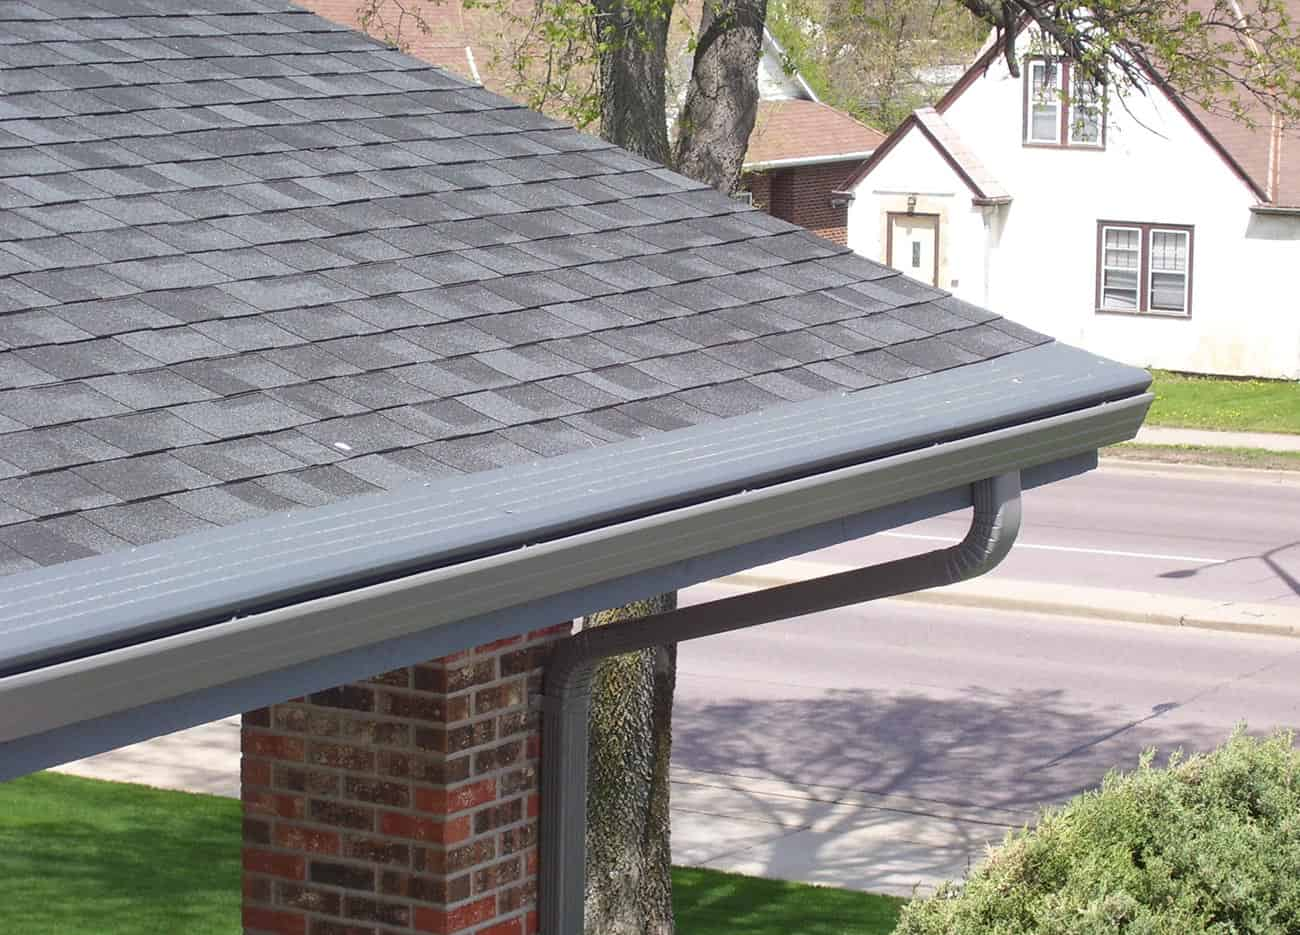 Best Gutter Protection Gutter Helmet In Mankato Minnesota